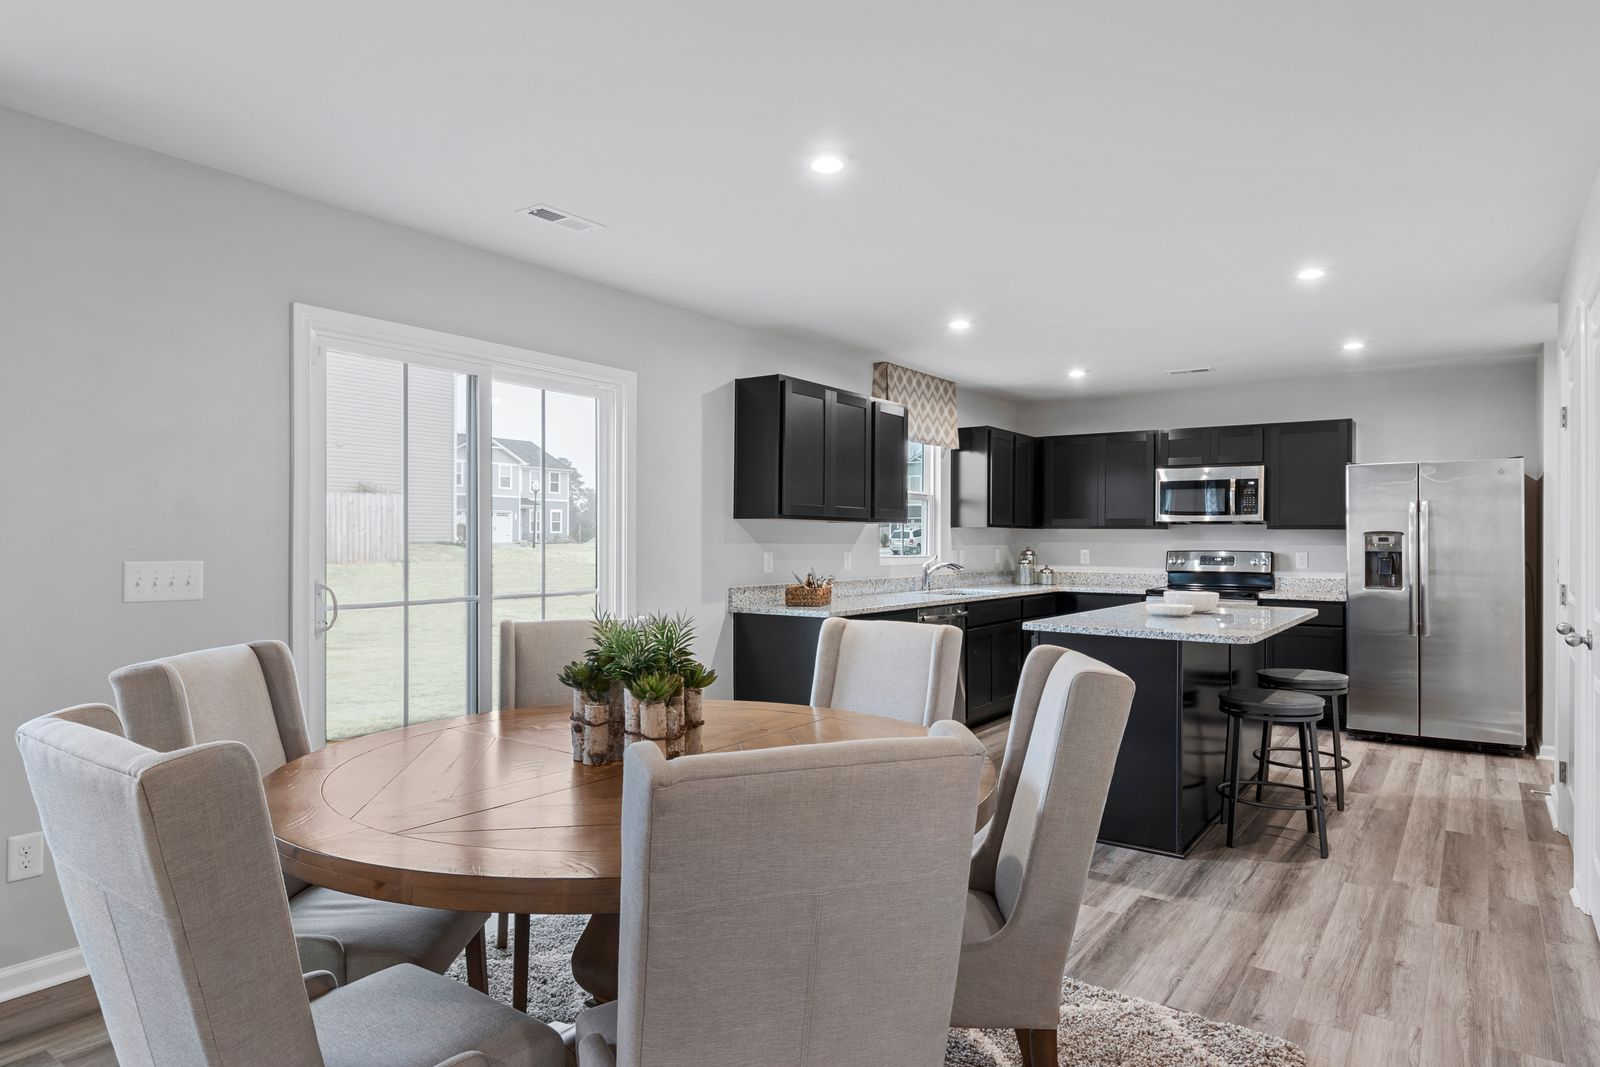 Kitchen featured in the Elm w/ Full Basement By Ryan Homes in Dayton-Springfield, OH